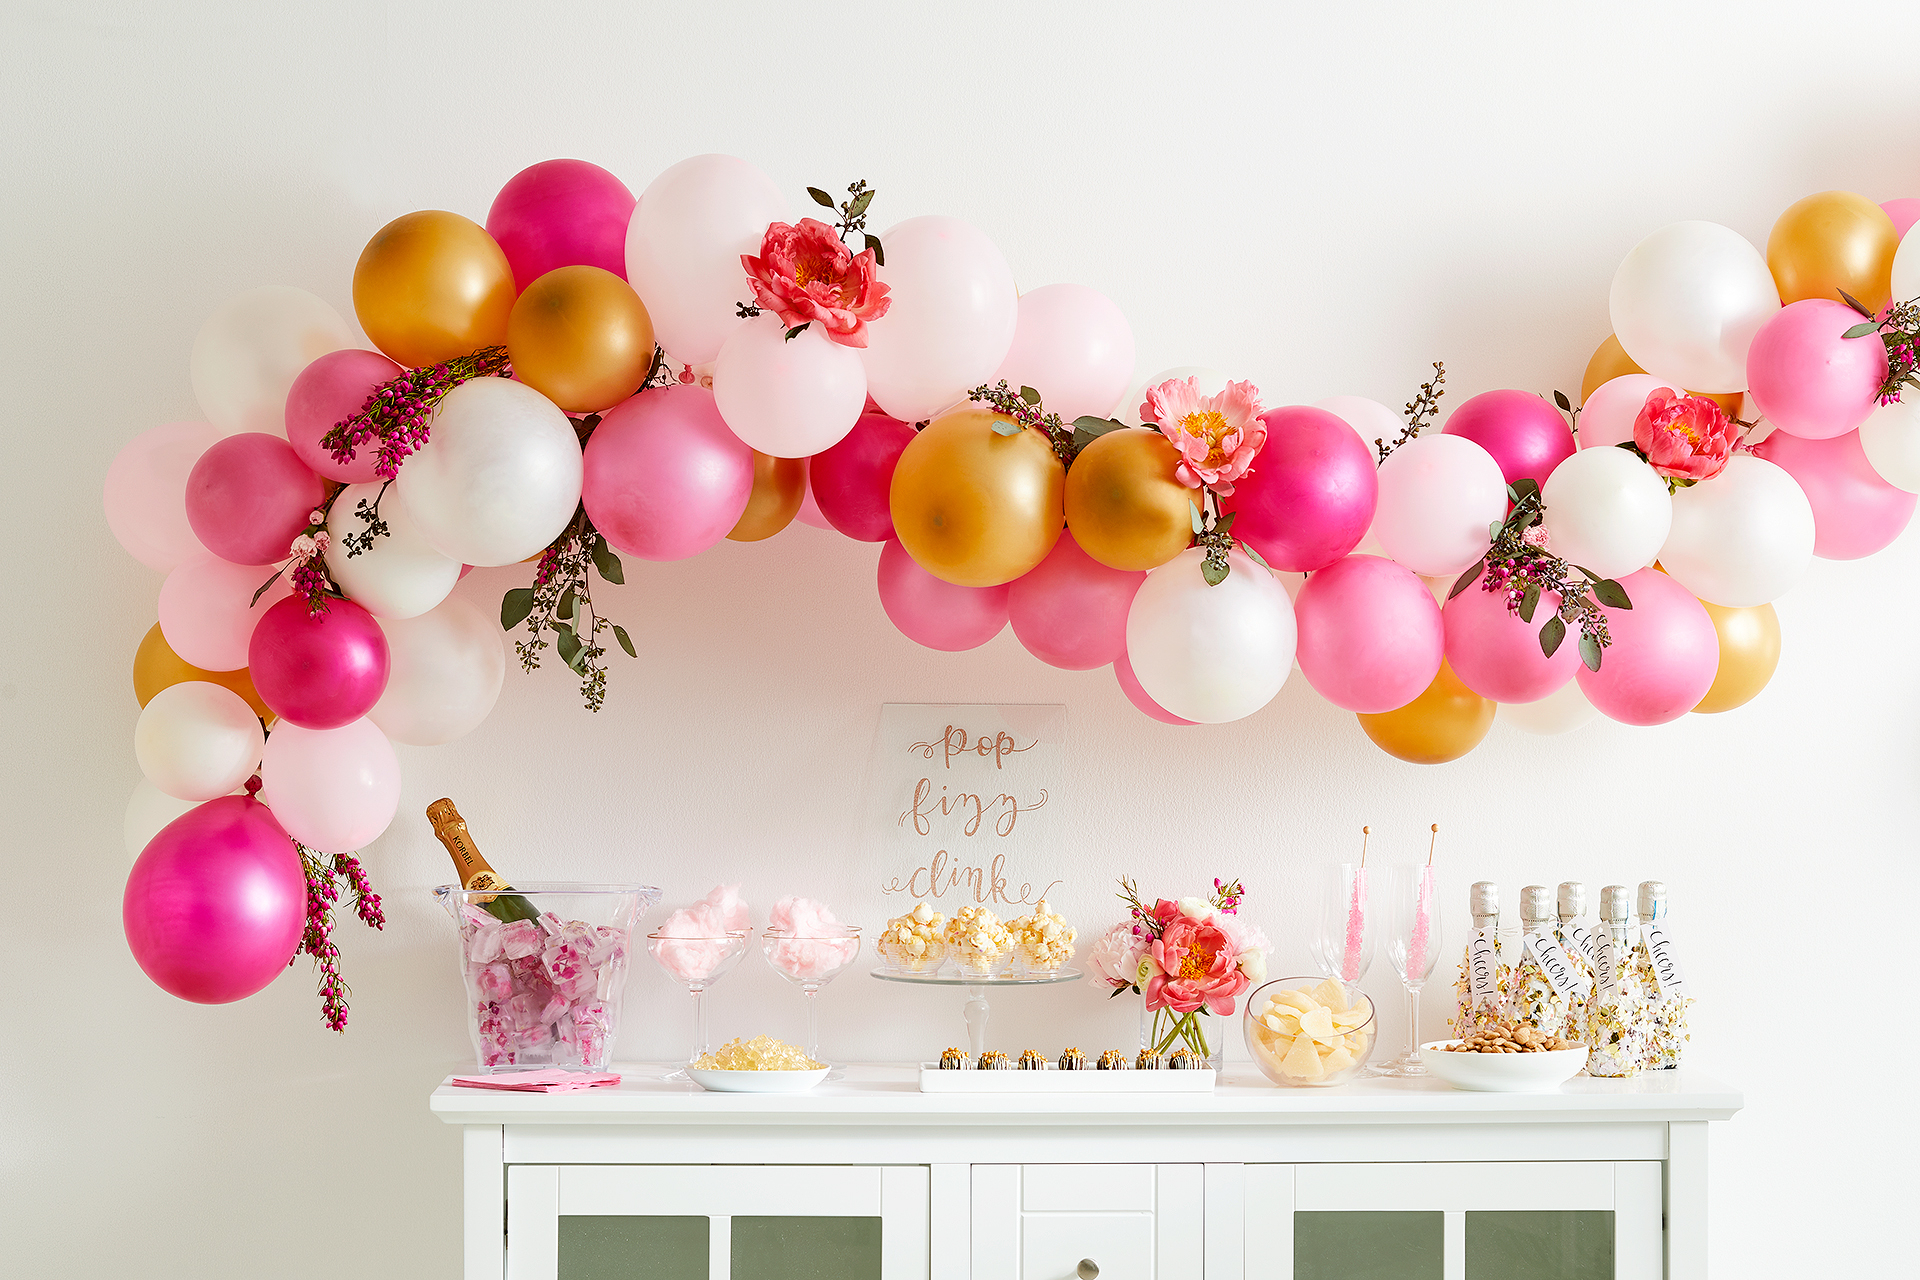 Make A Diy Balloon Garland In Under An Hour | Better Homes For 2018 Blended Fabric Spring Party Wall Hangings (View 12 of 20)